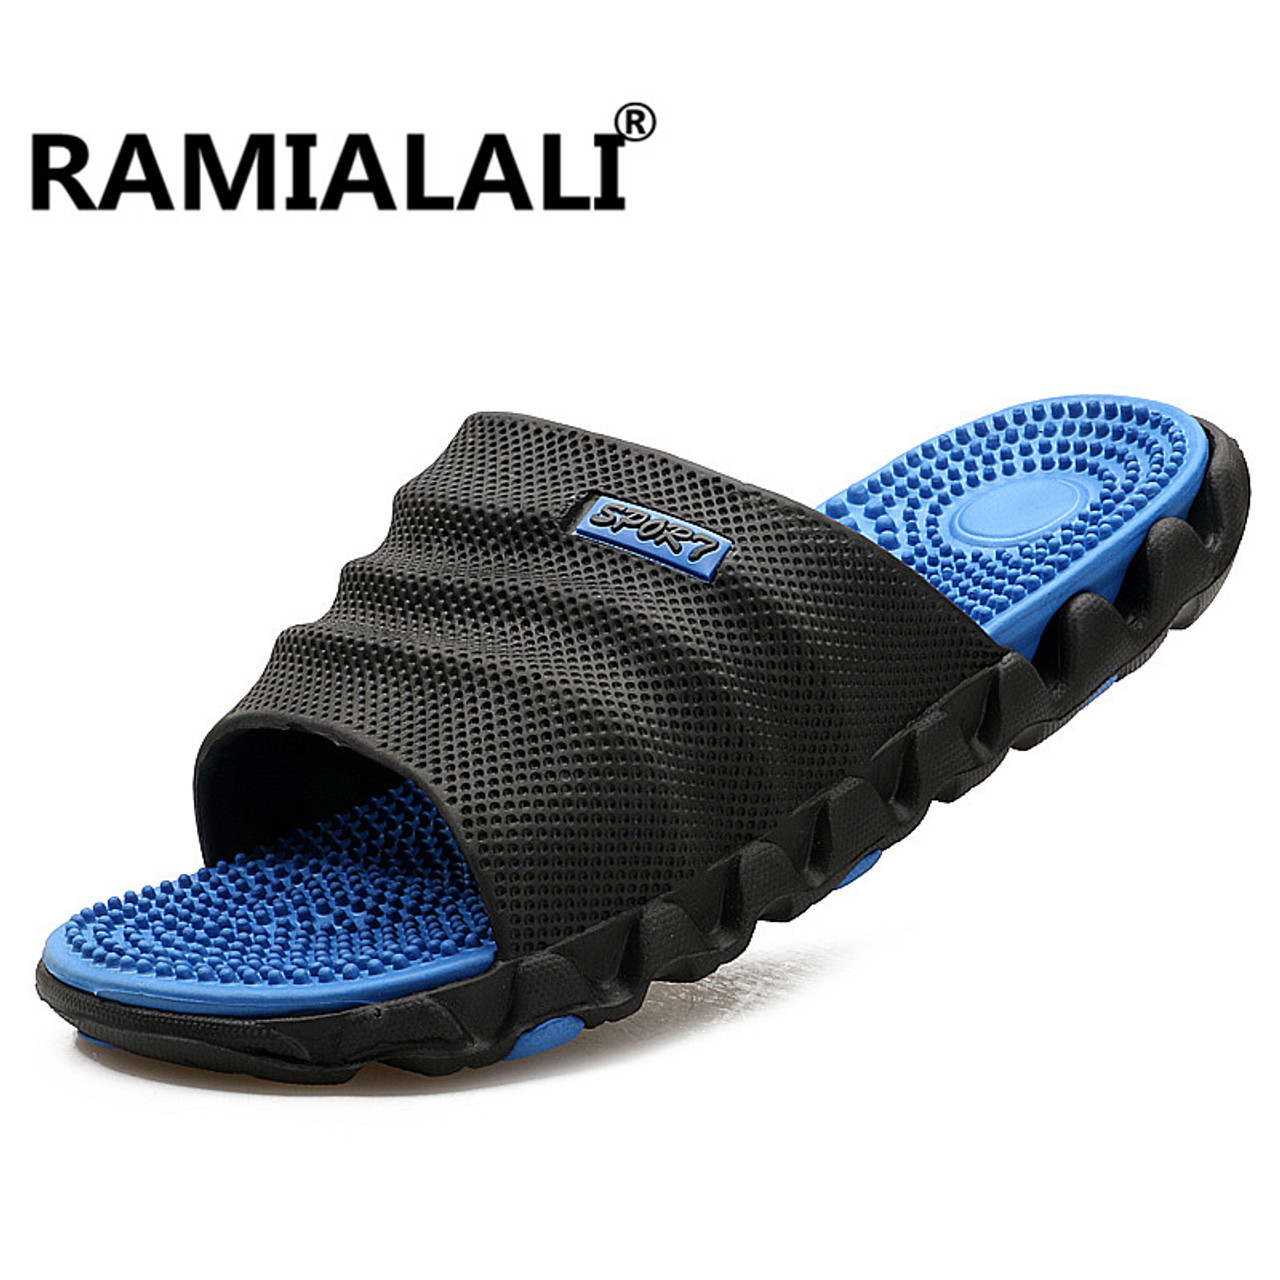 ac3a440f104b96 Ramialali Summer Slippers Men Casual Sandals Leisure Soft Slides Eva  Massage Beach Slippers Water Shoes Men s ...